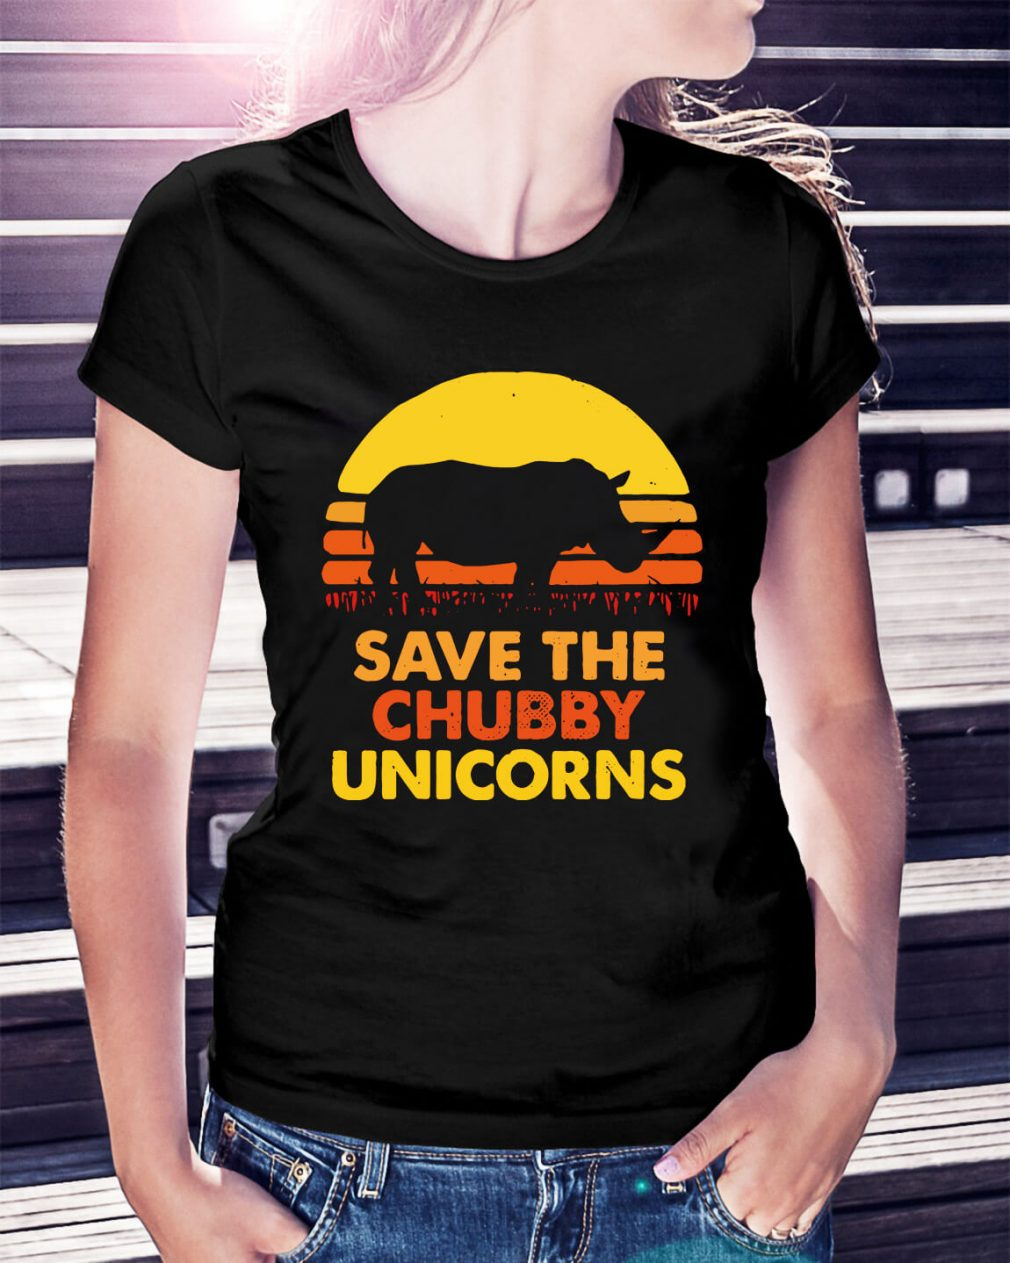 Save the chubby unicorns Ladies Tee